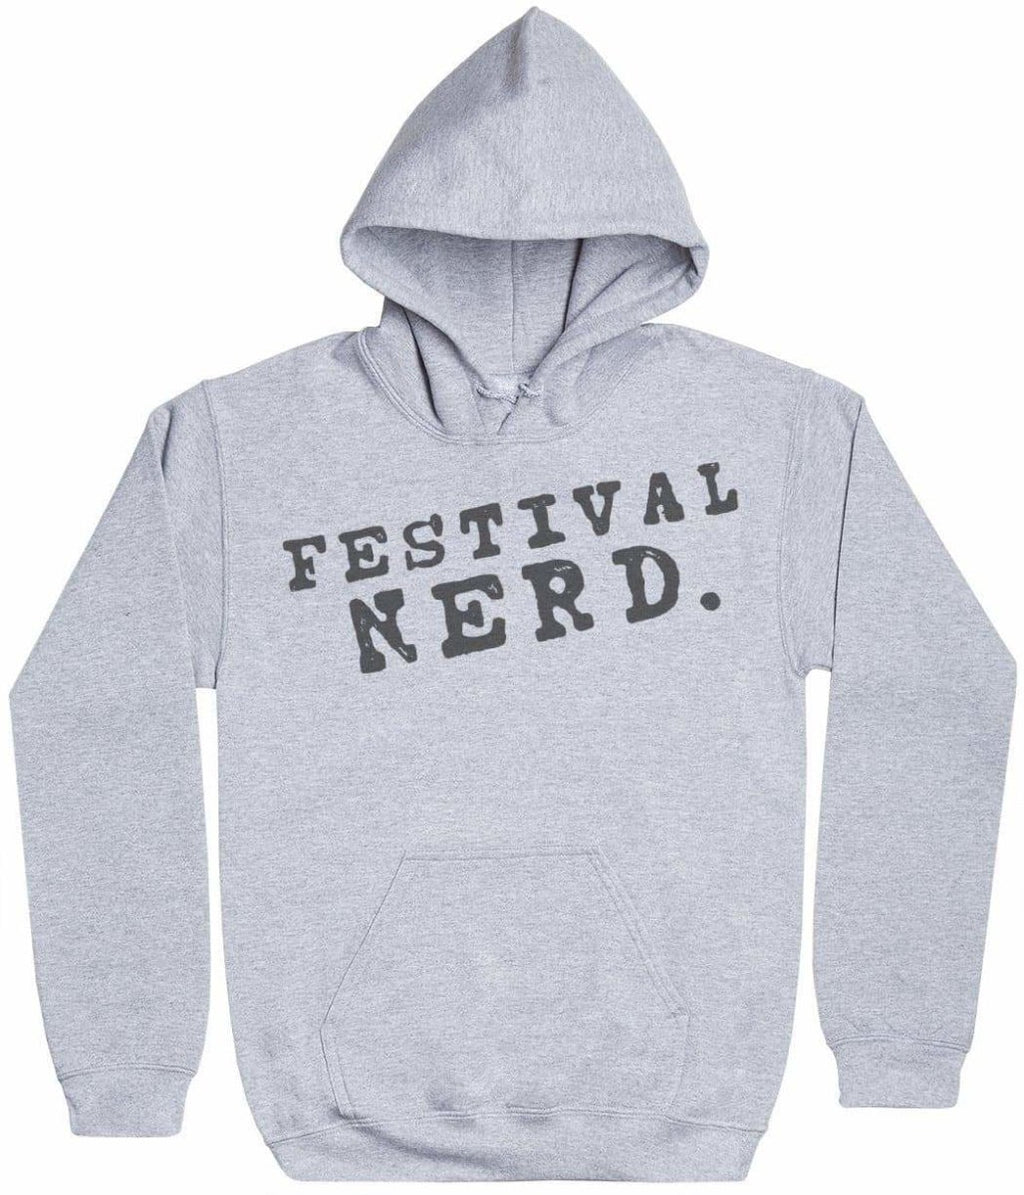 Festival Nerd. - Mens Hoodie - The Gift Project